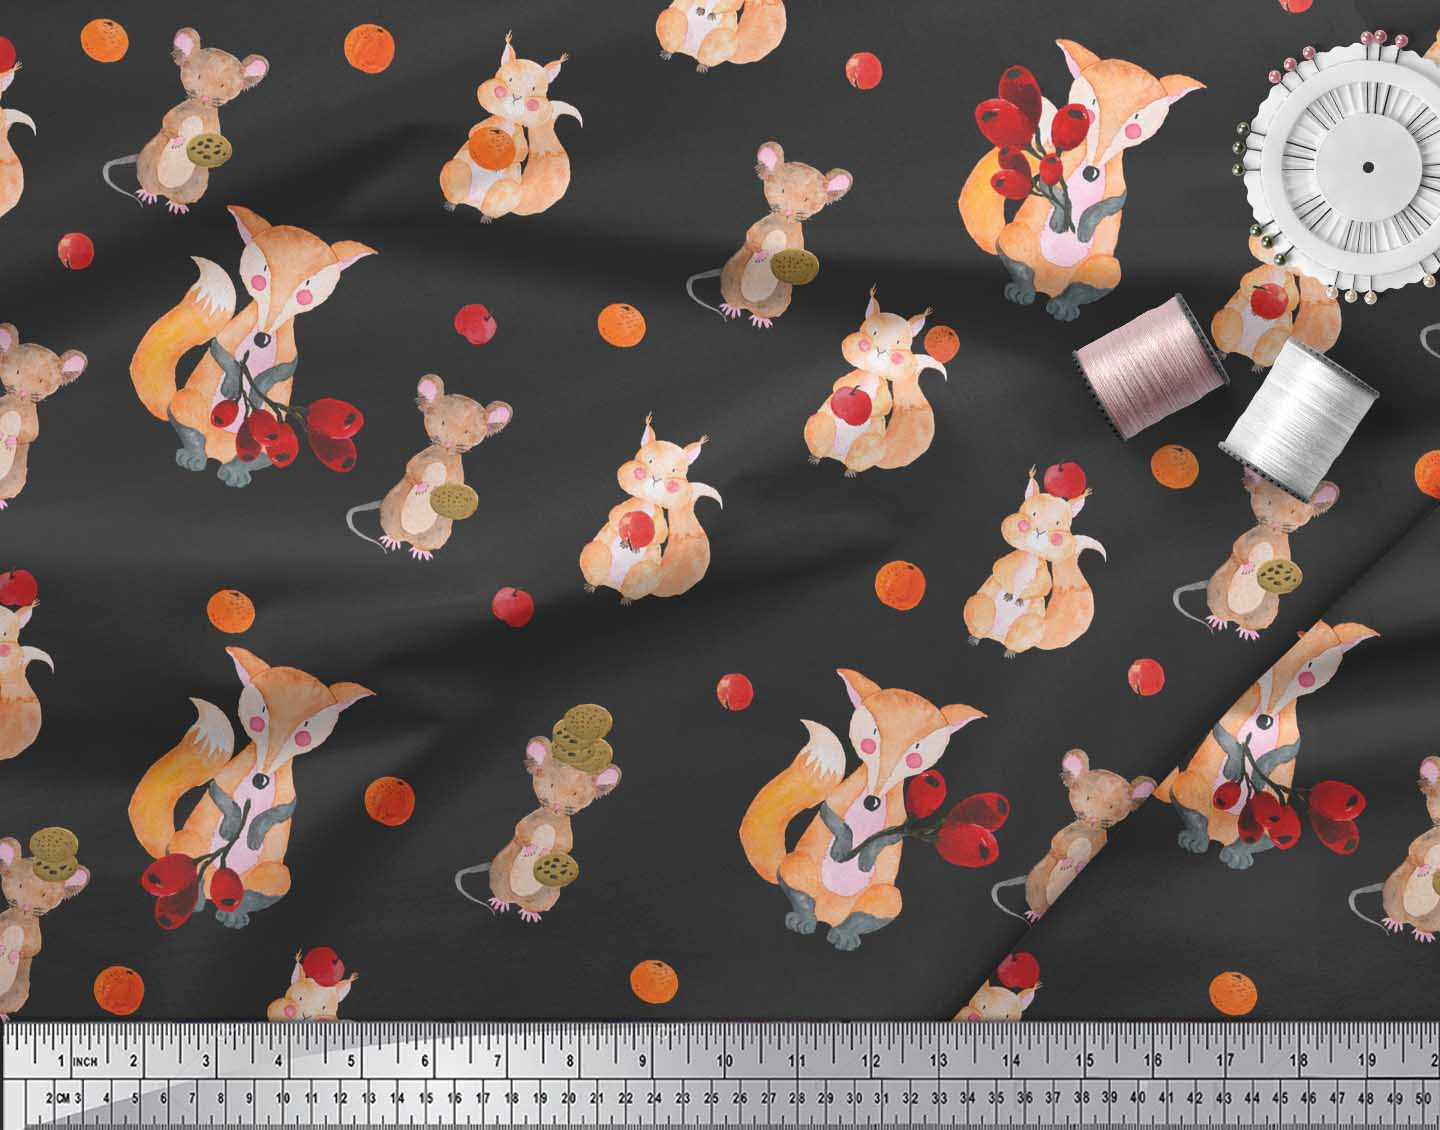 Soimoi-Black-Cotton-Poplin-Fabric-Fox-amp-Bunny-Kids-Print-Fabric-Z0m thumbnail 3